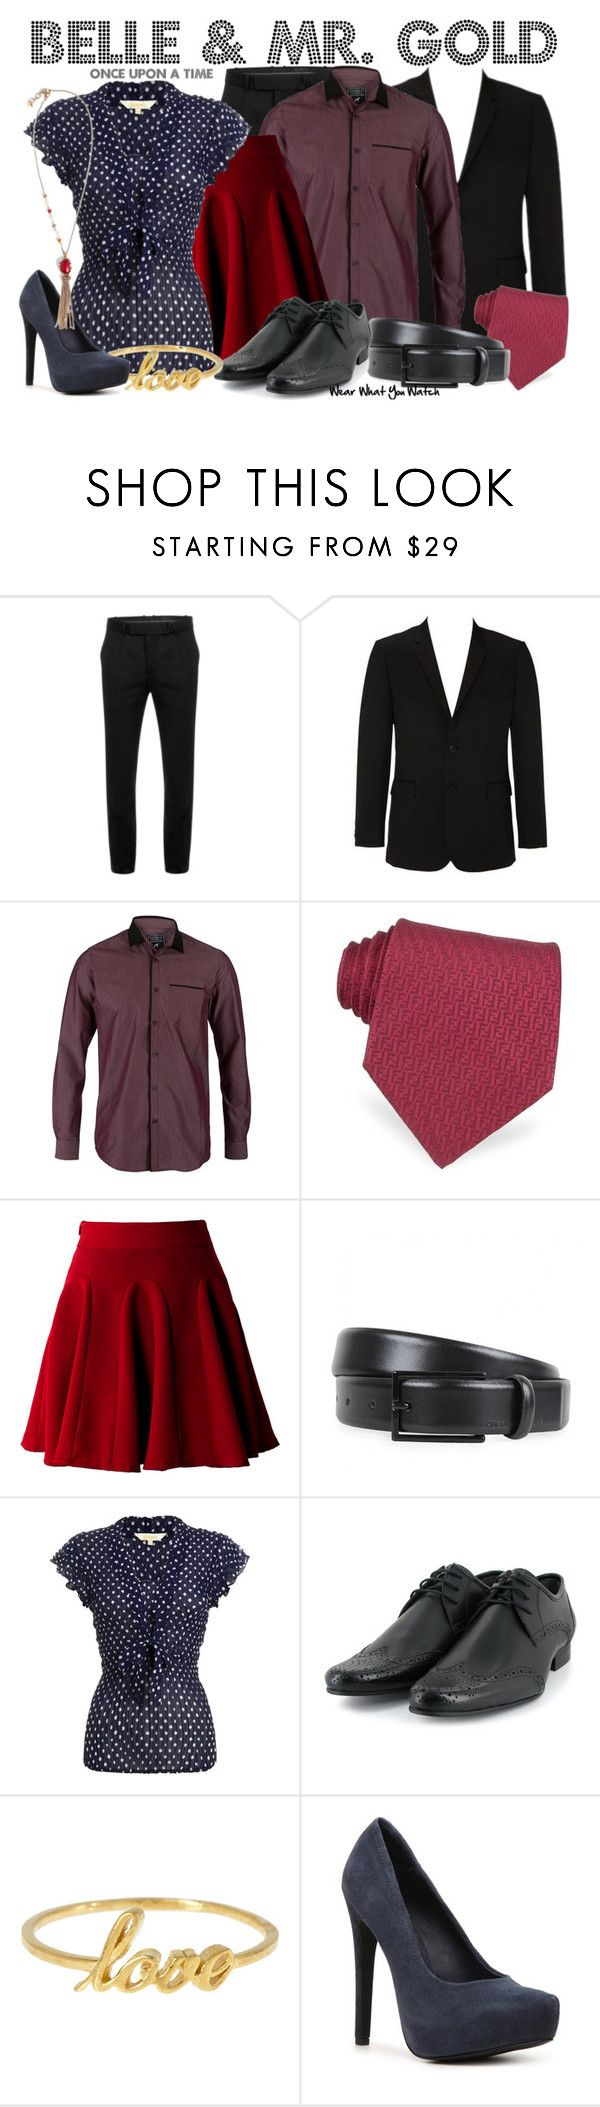 Once Upon a Time by wearwhatyouwatch on Polyvore featuring John Lewis, Vegetarian Shoes, Kelsi Dagger Brooklyn, Alex Monroe, Lucky Brand, HUGO, Fendi, Alexander McQueen, polka dots and cocktail rings